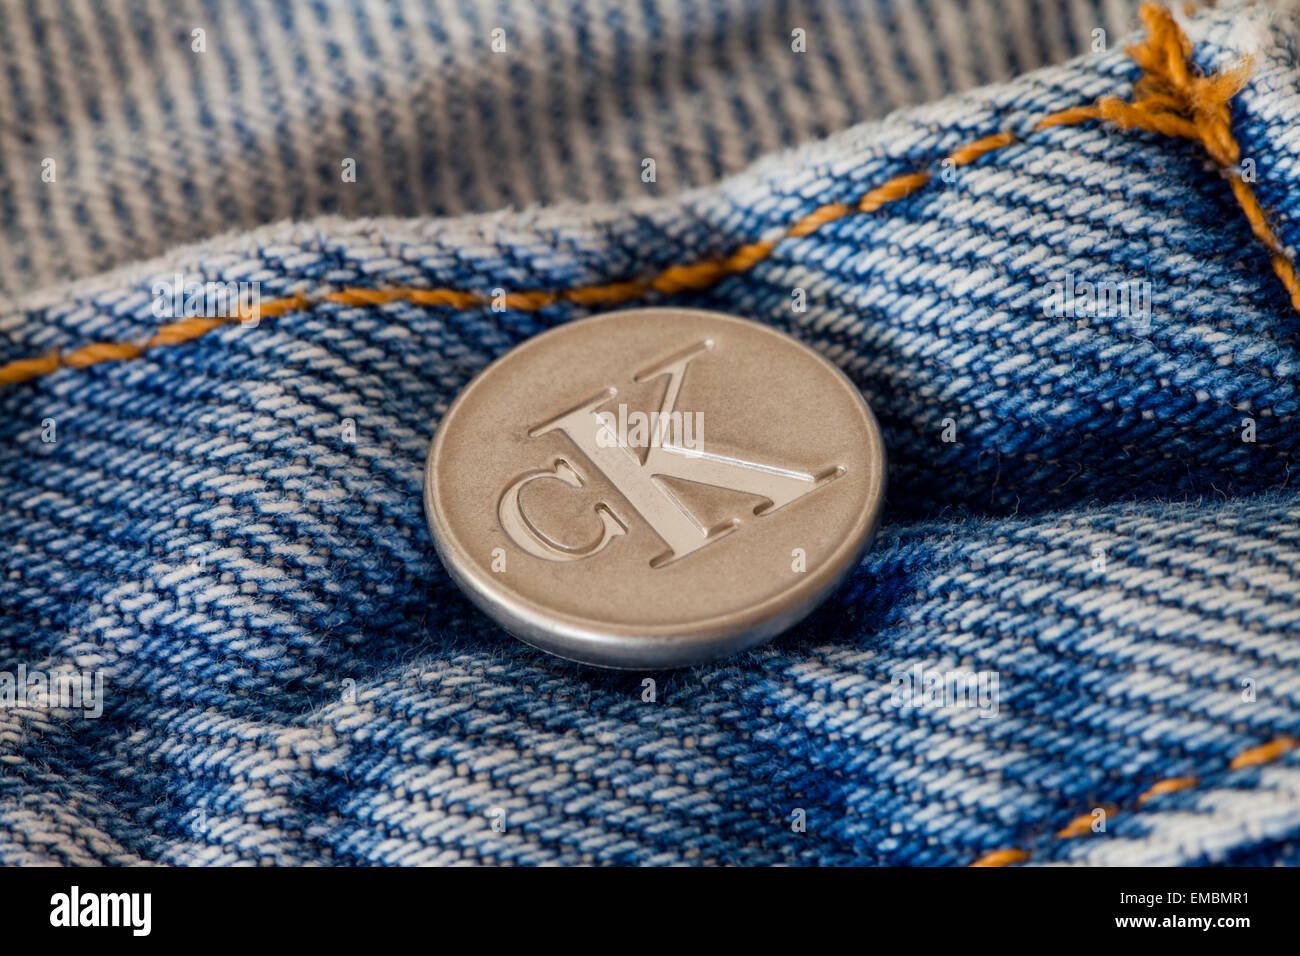 Calvin Klein blue jeans button - Stock Image